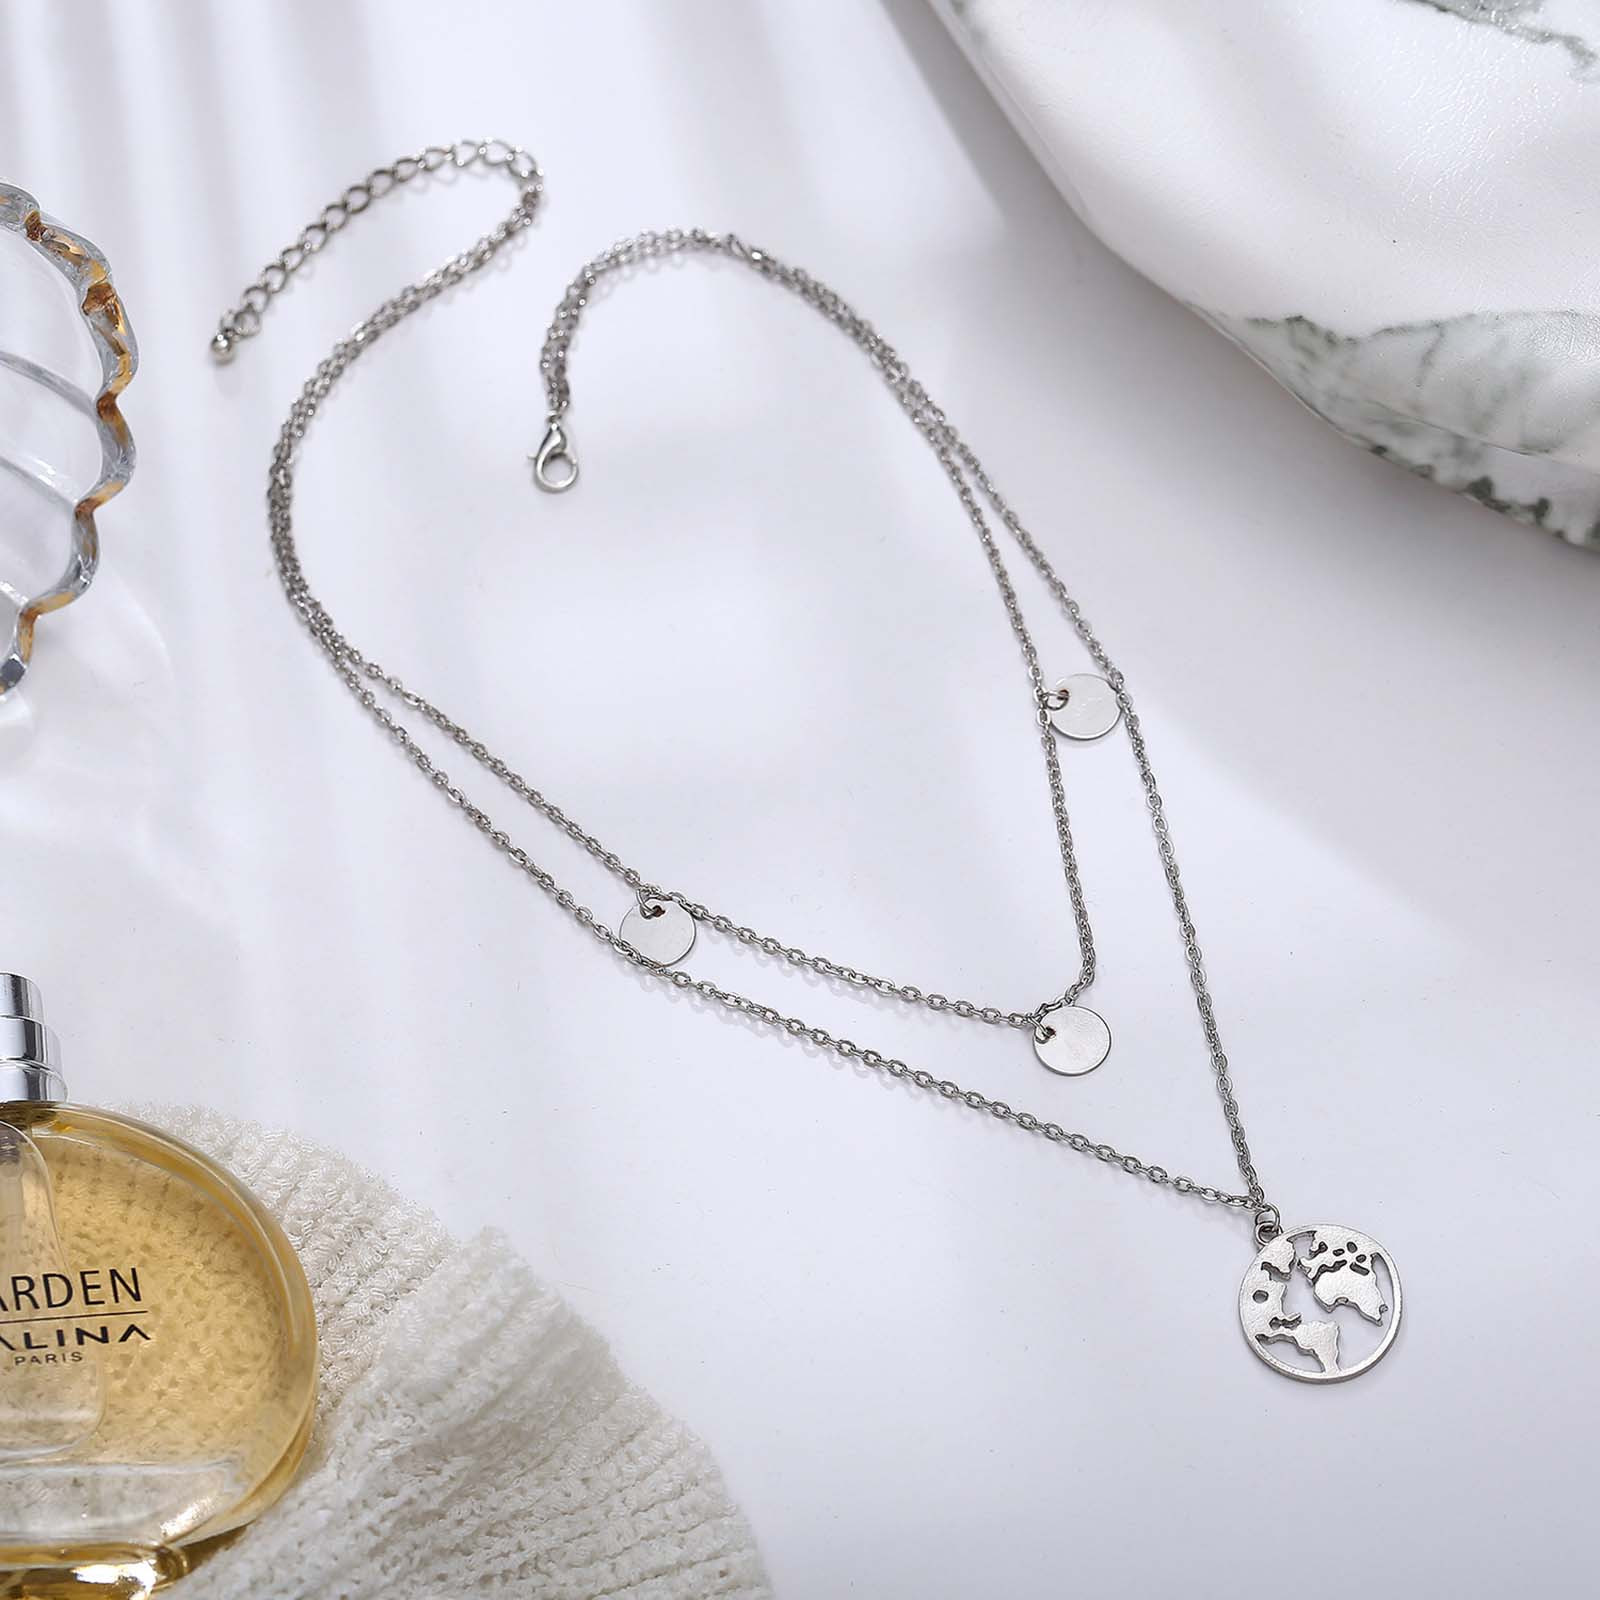 Women's Moon Star Pendant Choker Necklace Gold Silver Long Chain Jewelry 2020 Trendy Jewelry Necklace Collar De Mujer L3